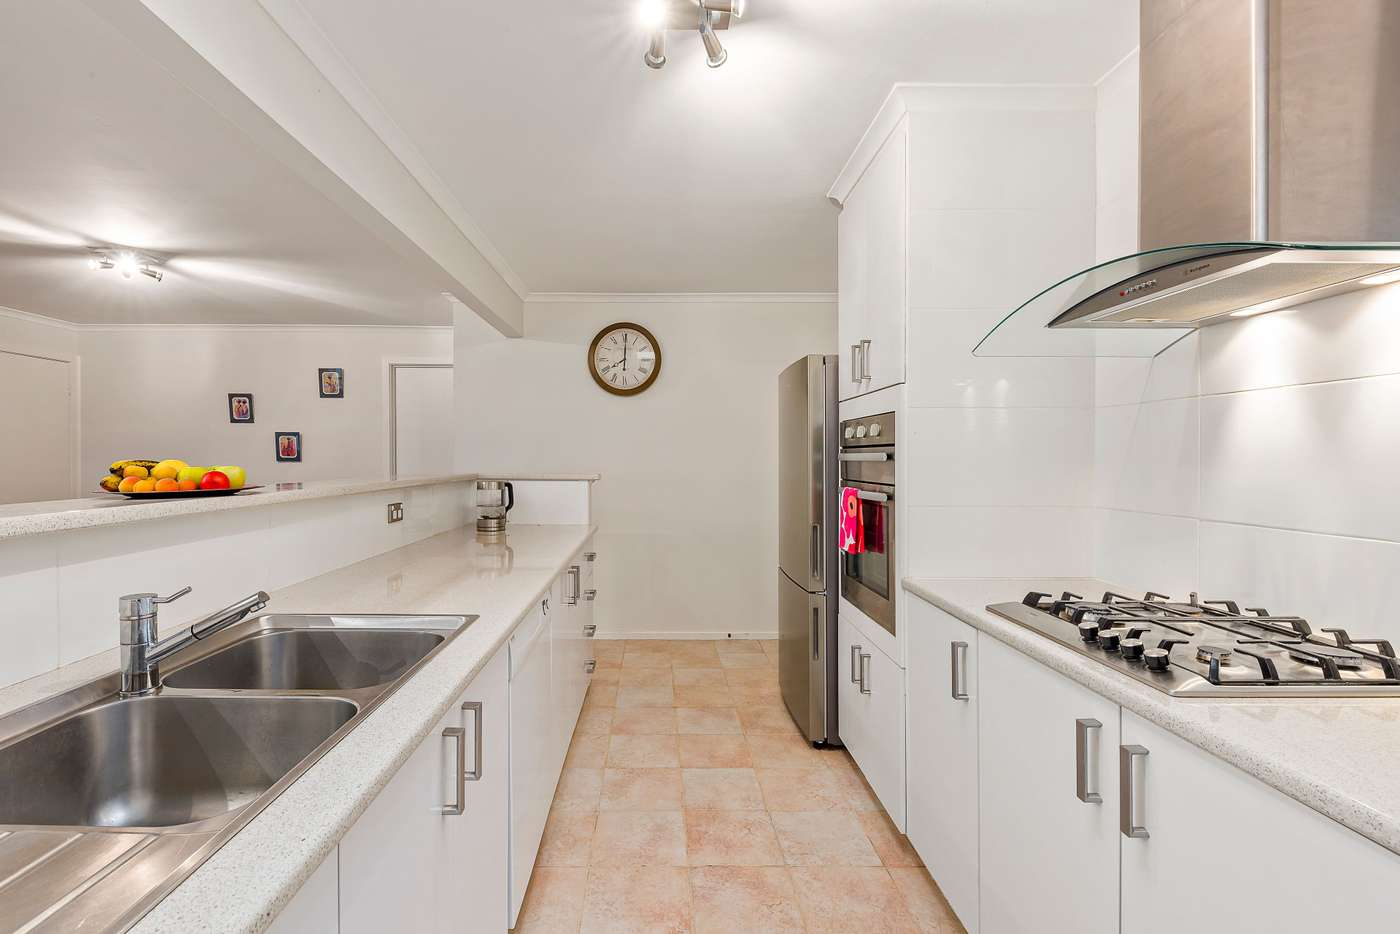 Fifth view of Homely house listing, 62 Raphael Crescent, Frankston VIC 3199